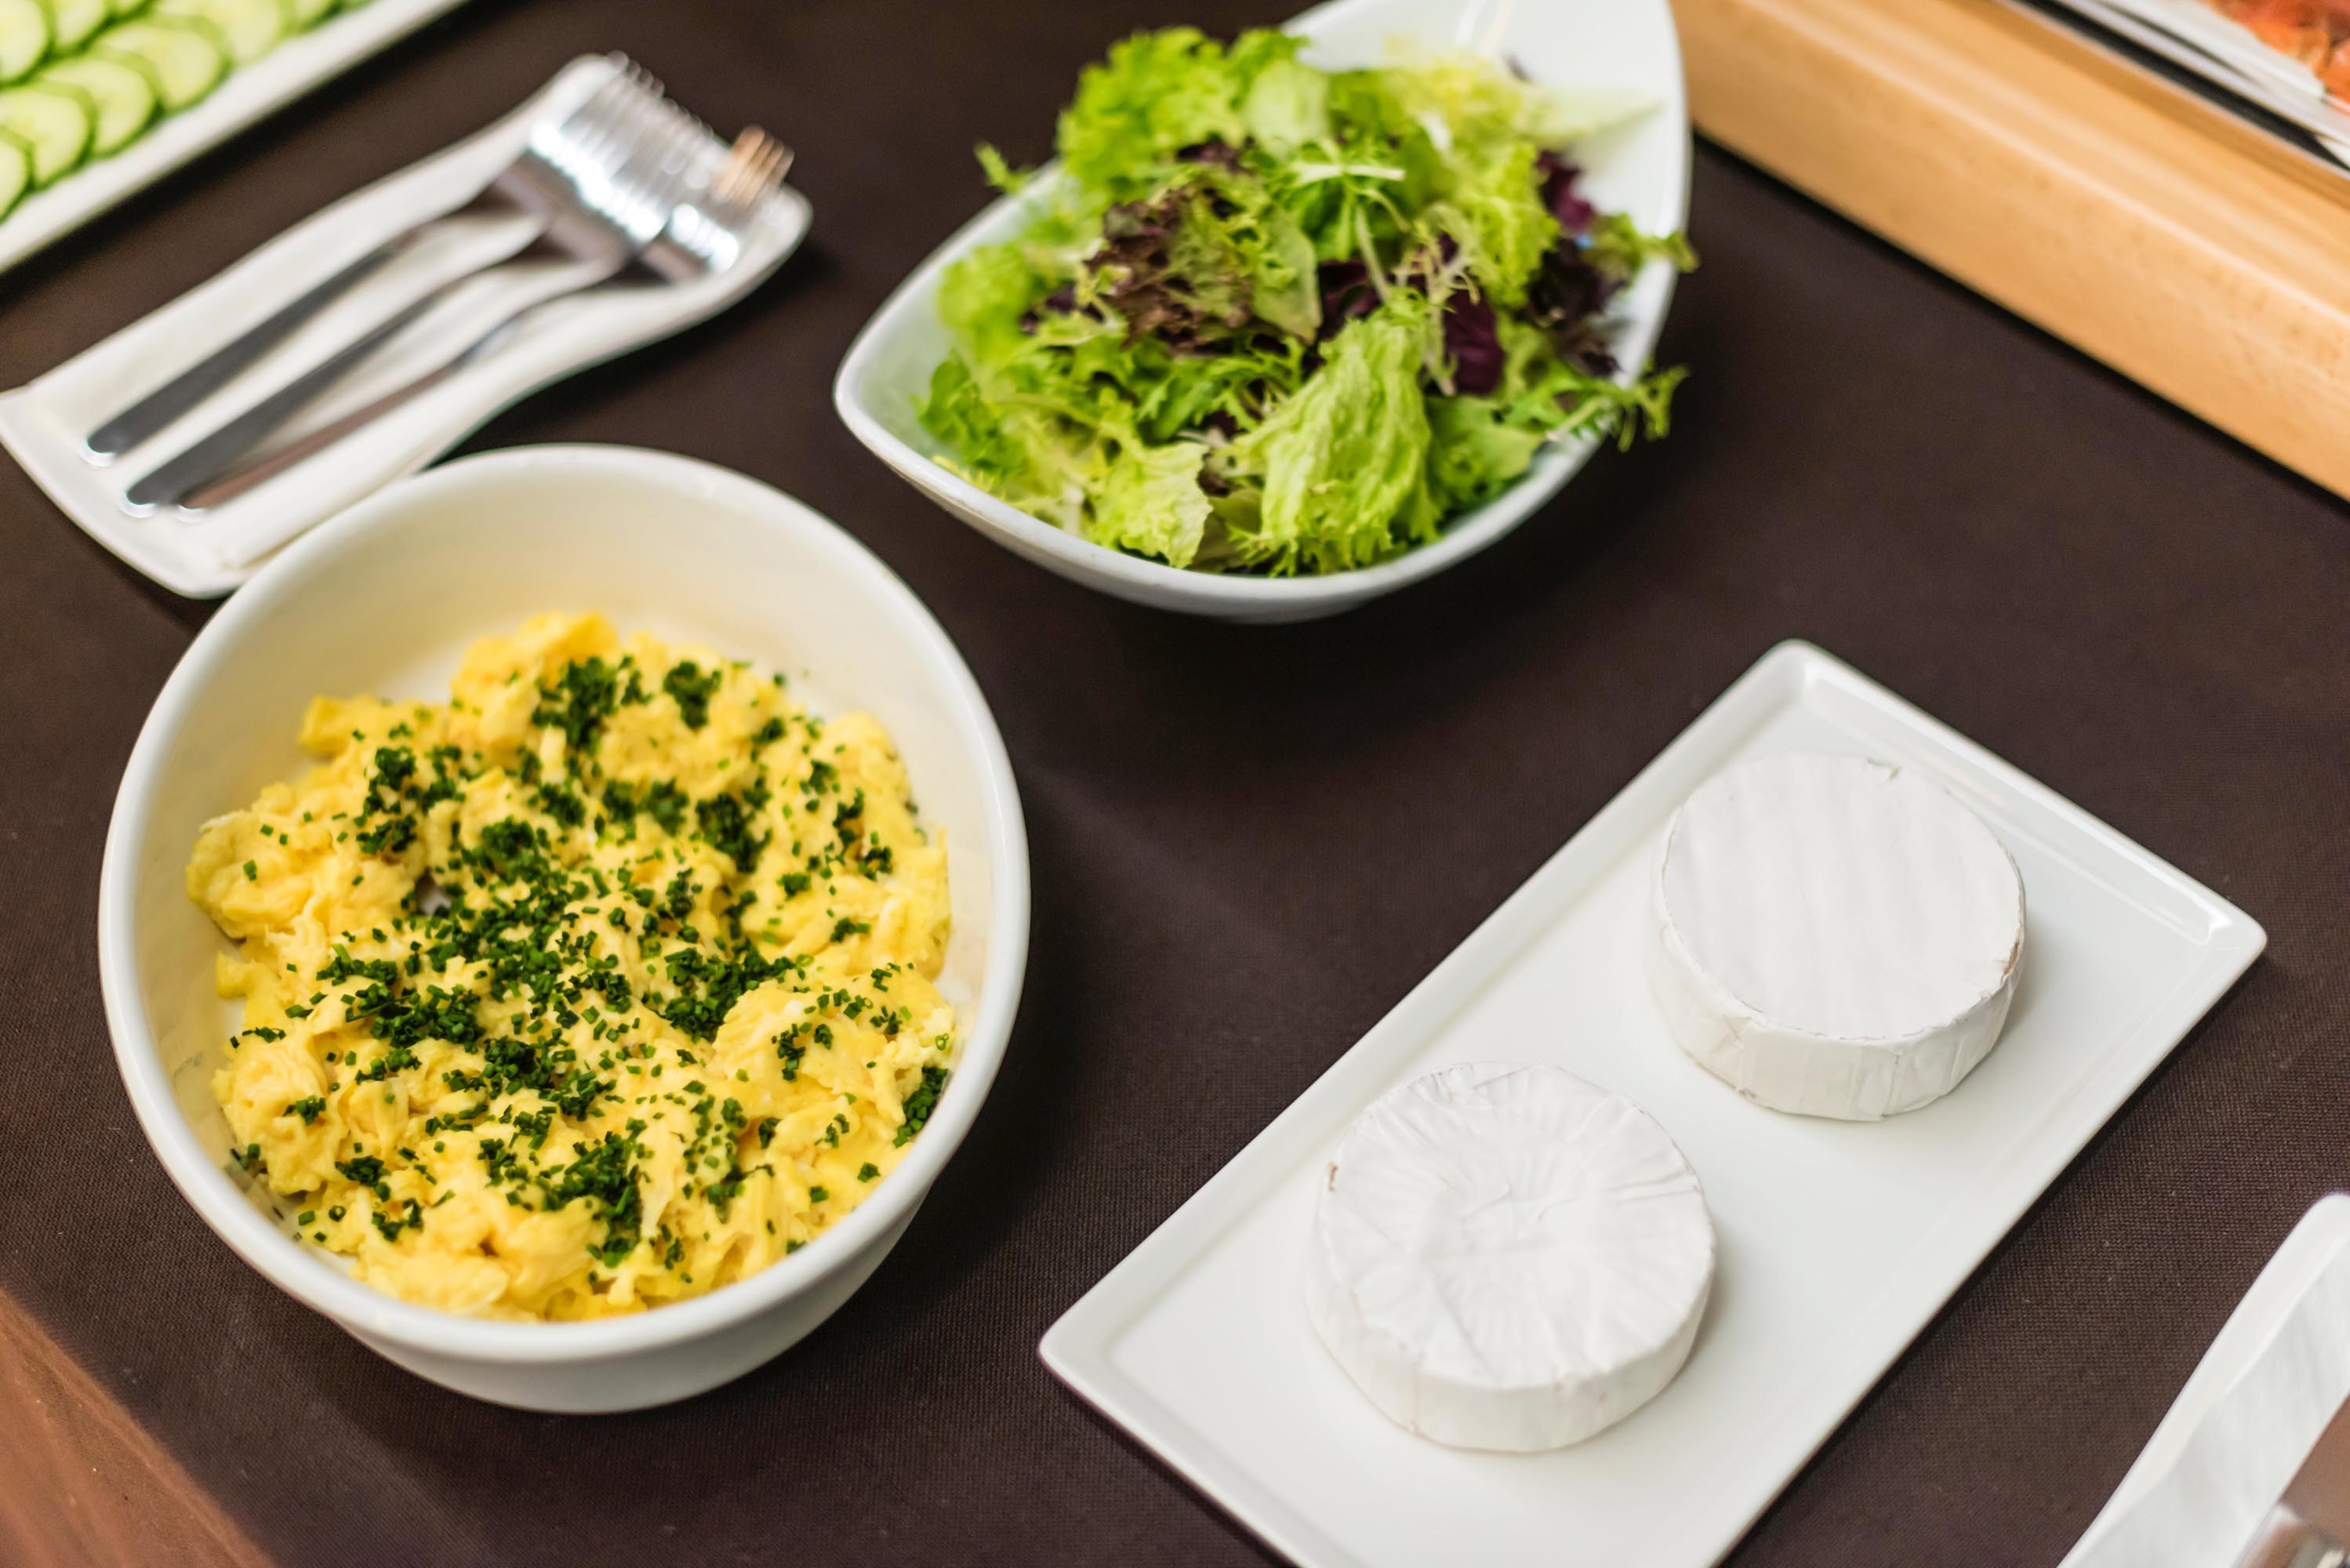 Cheese, scrambled eggs, and salad